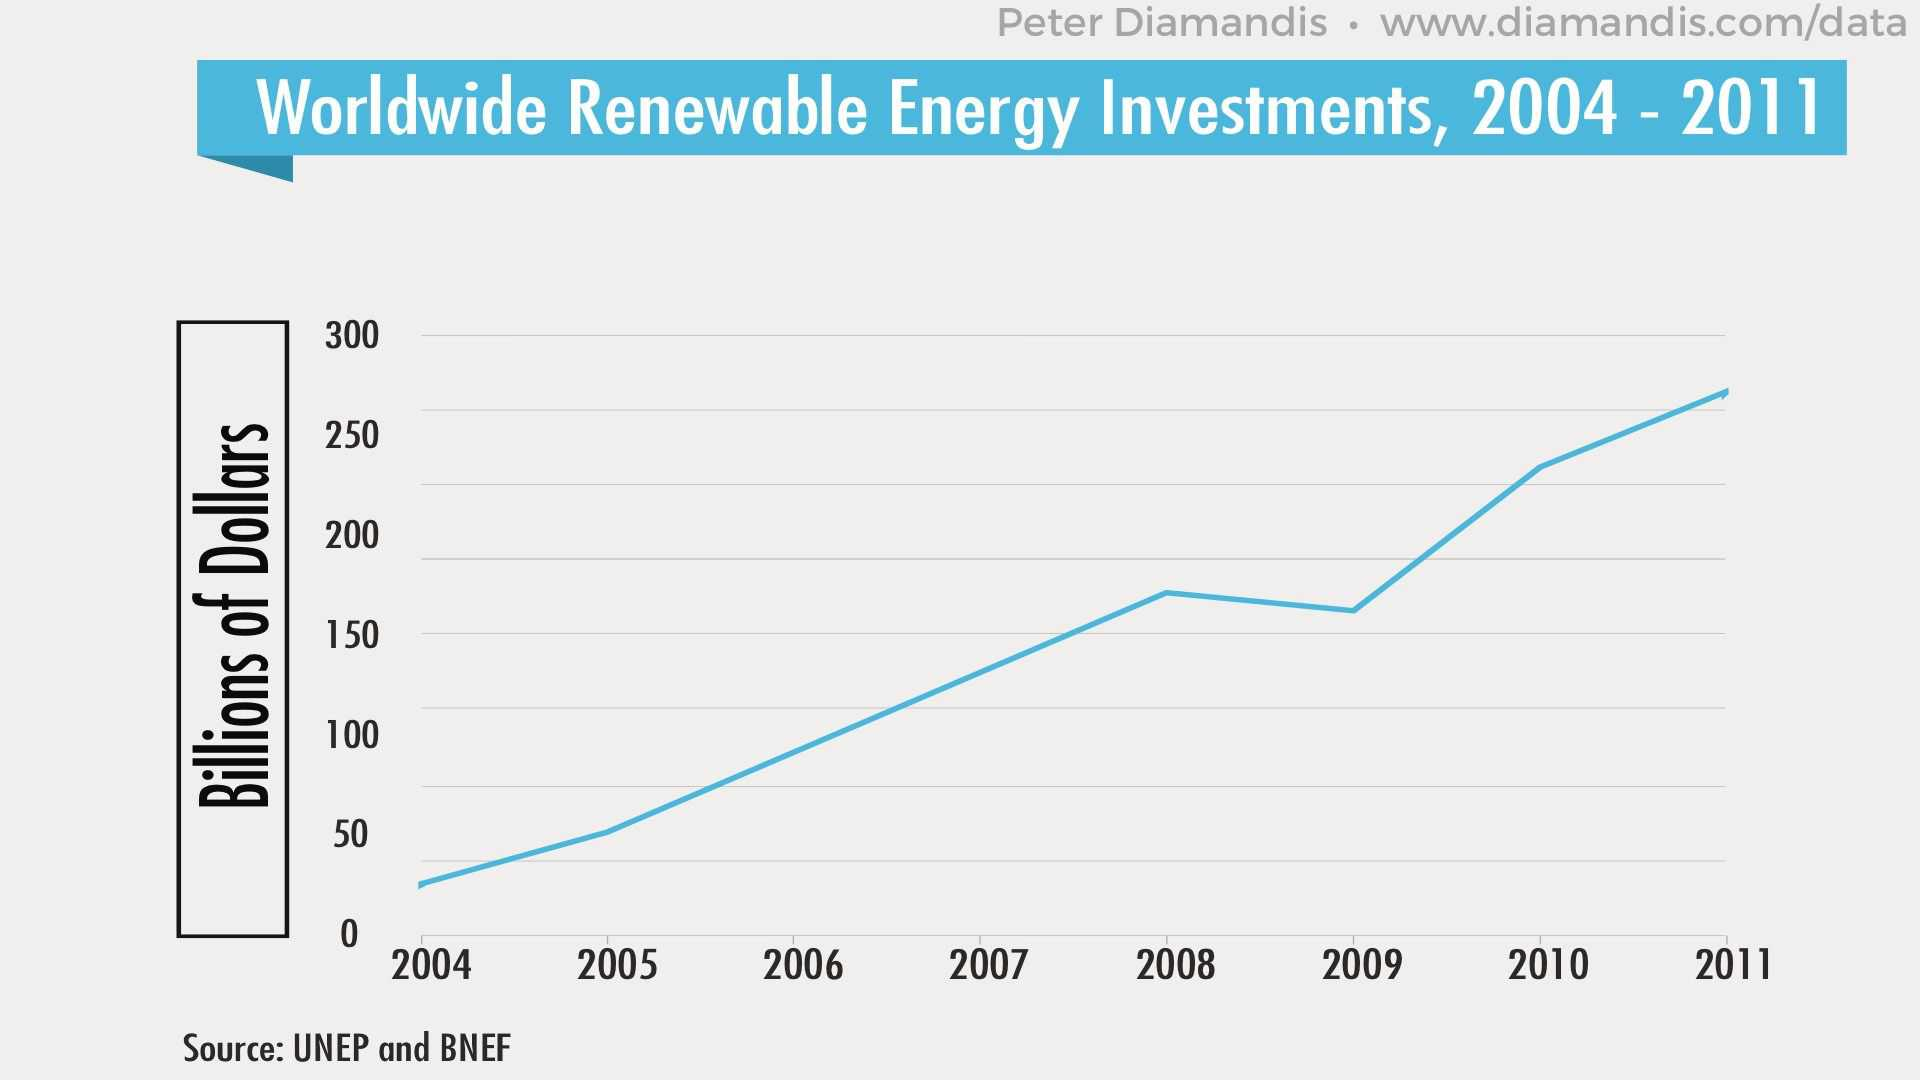 Worldwide-Renewable-Energy-Investments